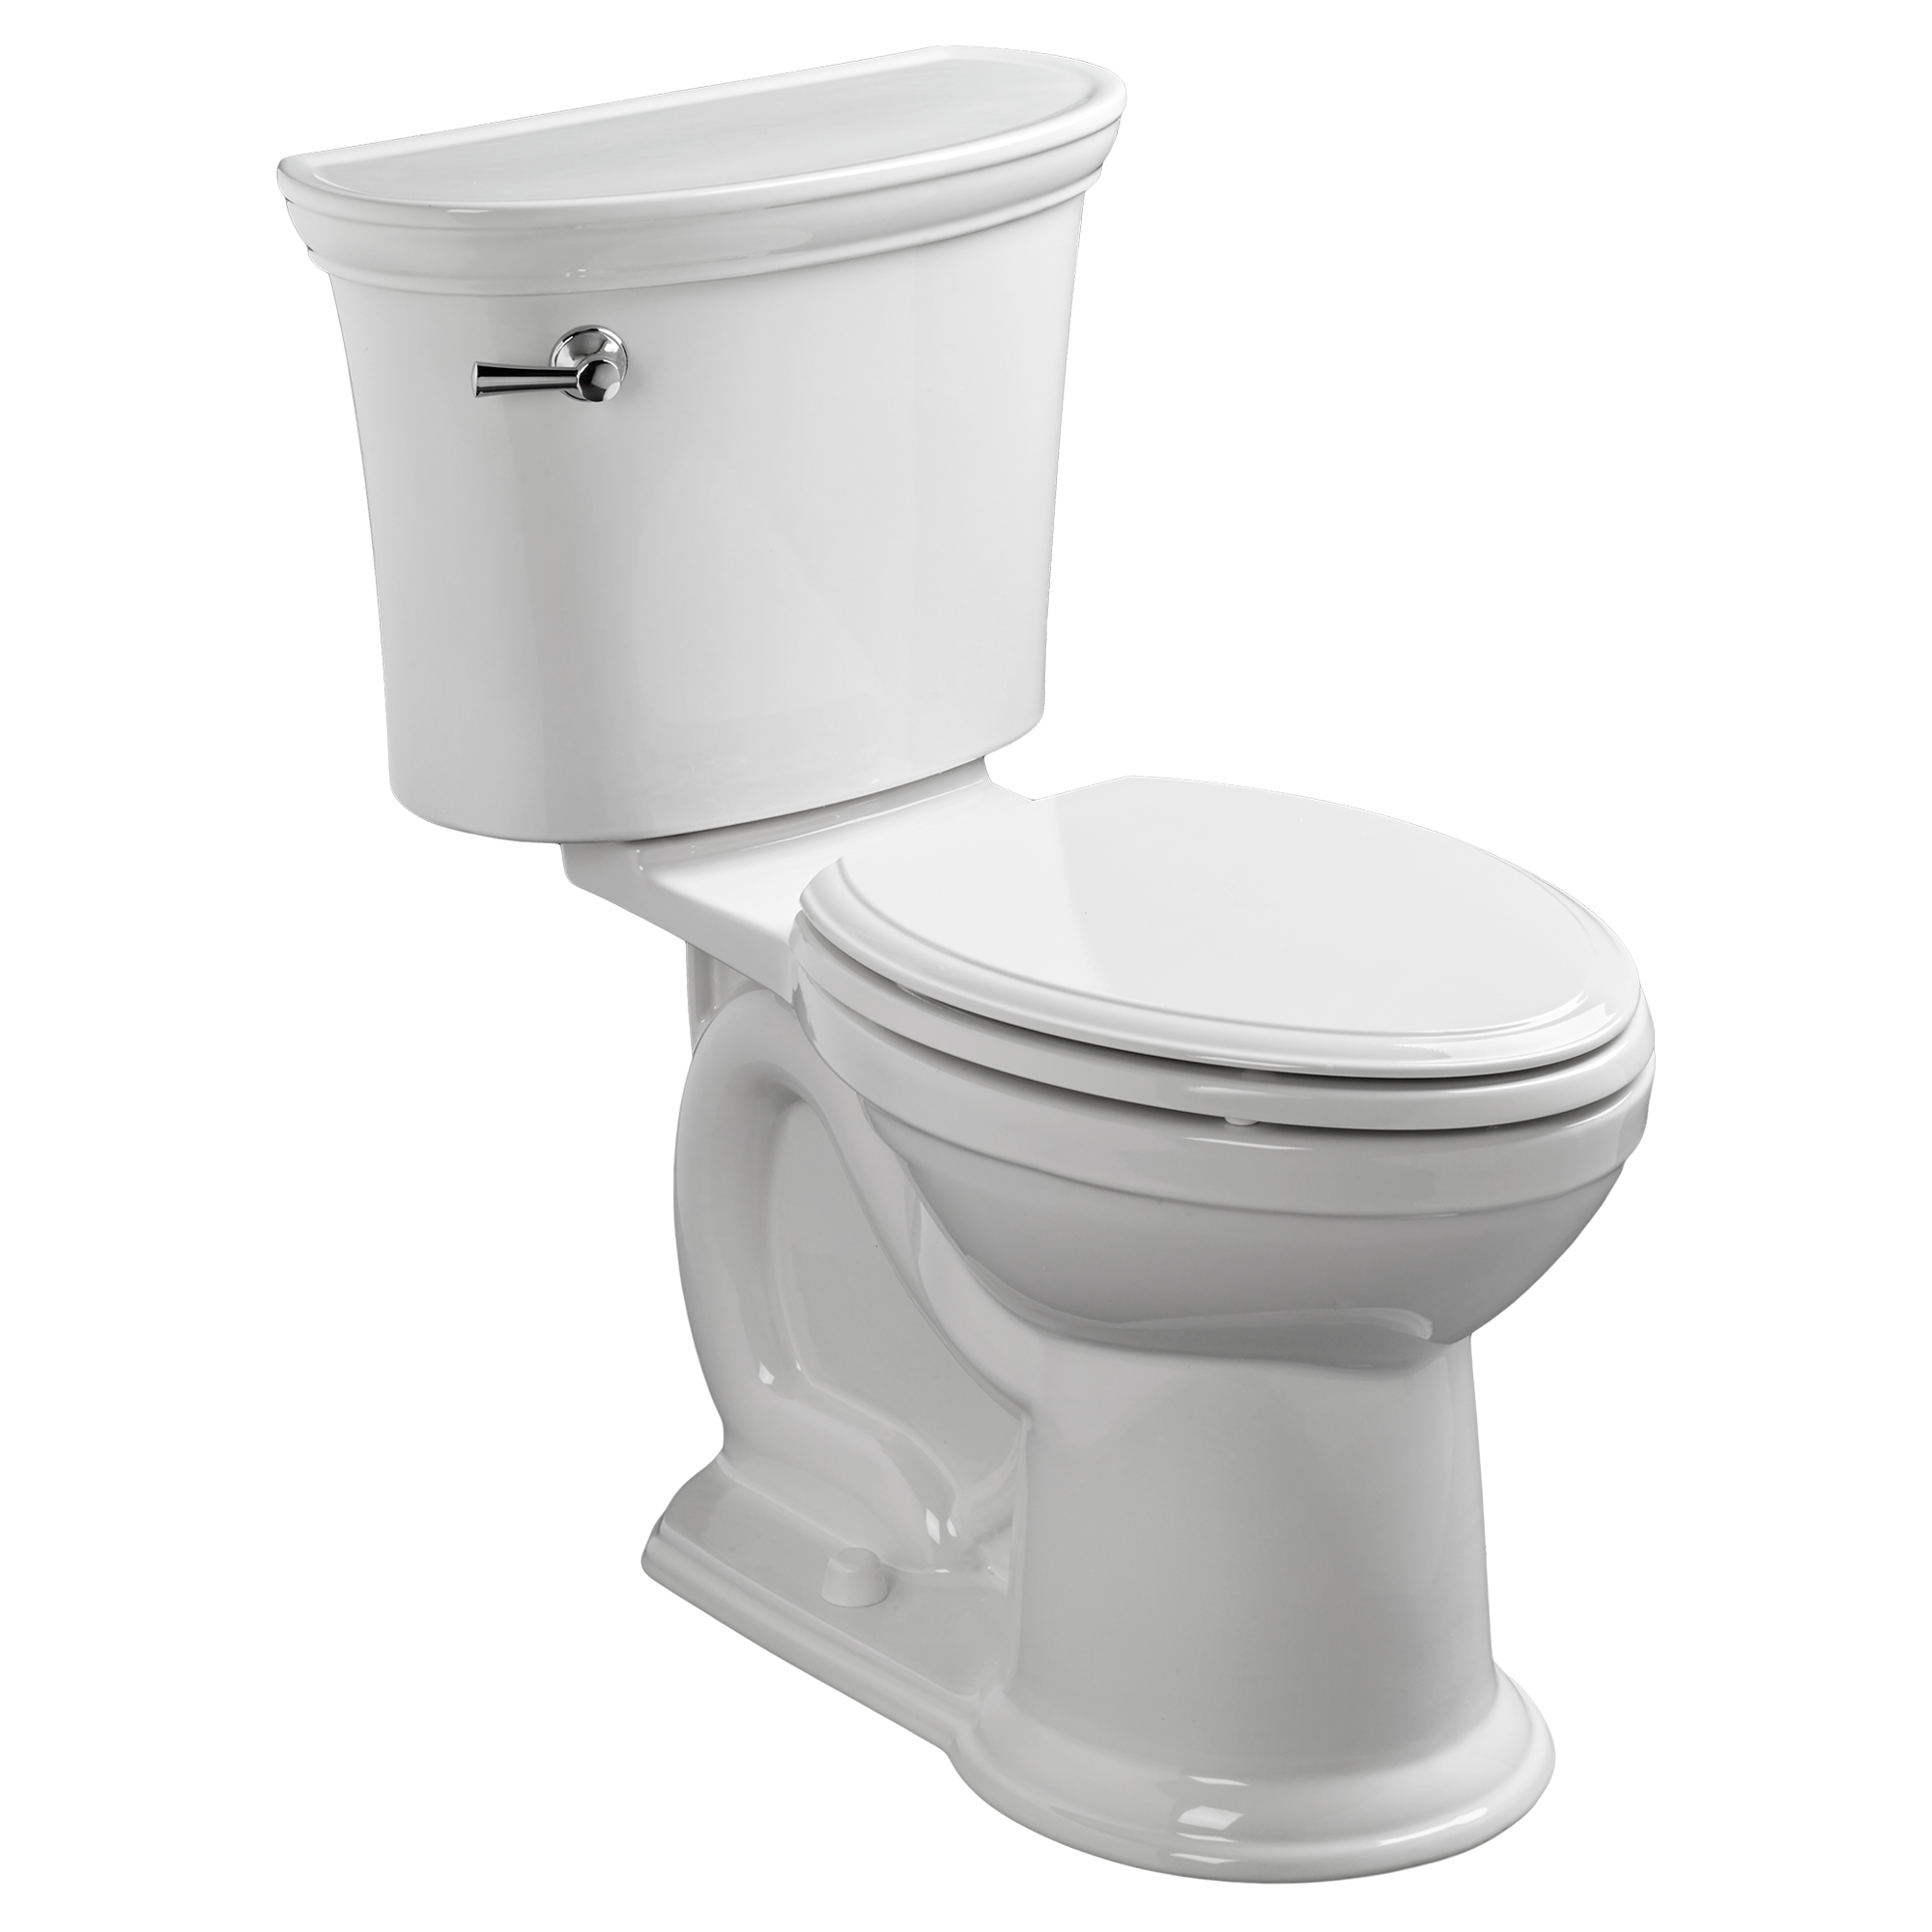 Esteem VorMax Right Height Elongated 1.28gpf Toilet - Toilet HD PNG